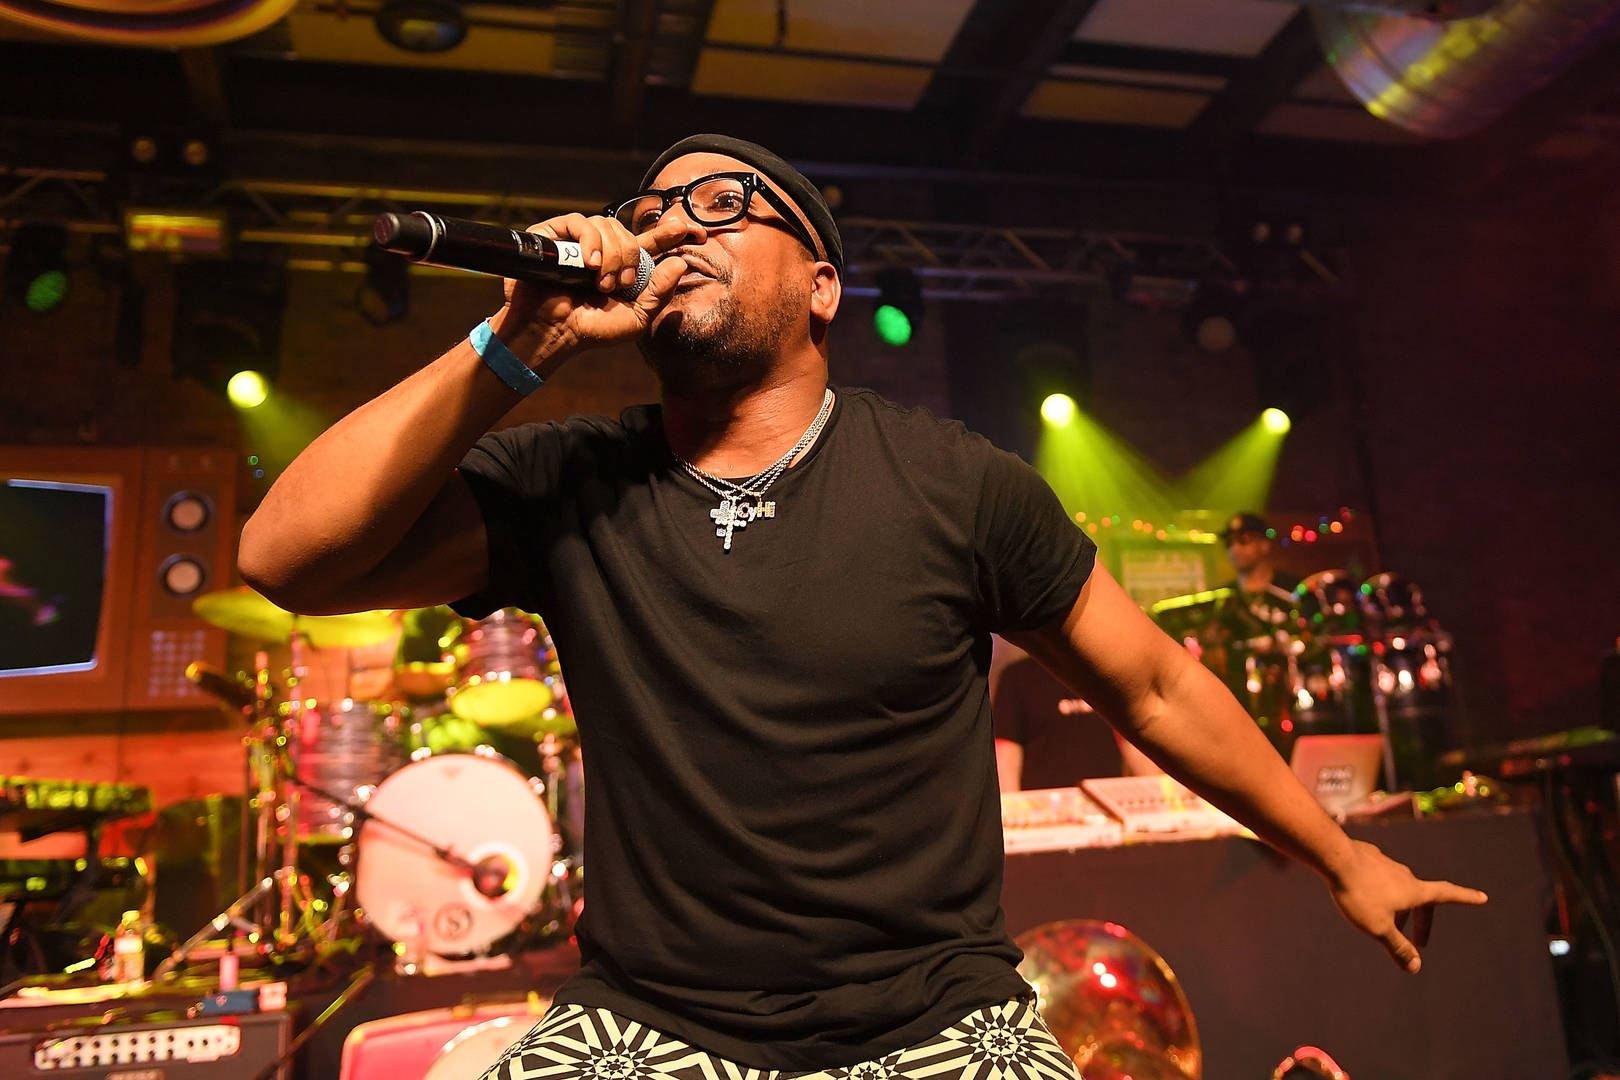 Rapper Cyhi the Prynce and The Roots perform during the Budlight Event 2017 SXSW Conference and Festivals on March 18, 2017 in Austin, Texas.